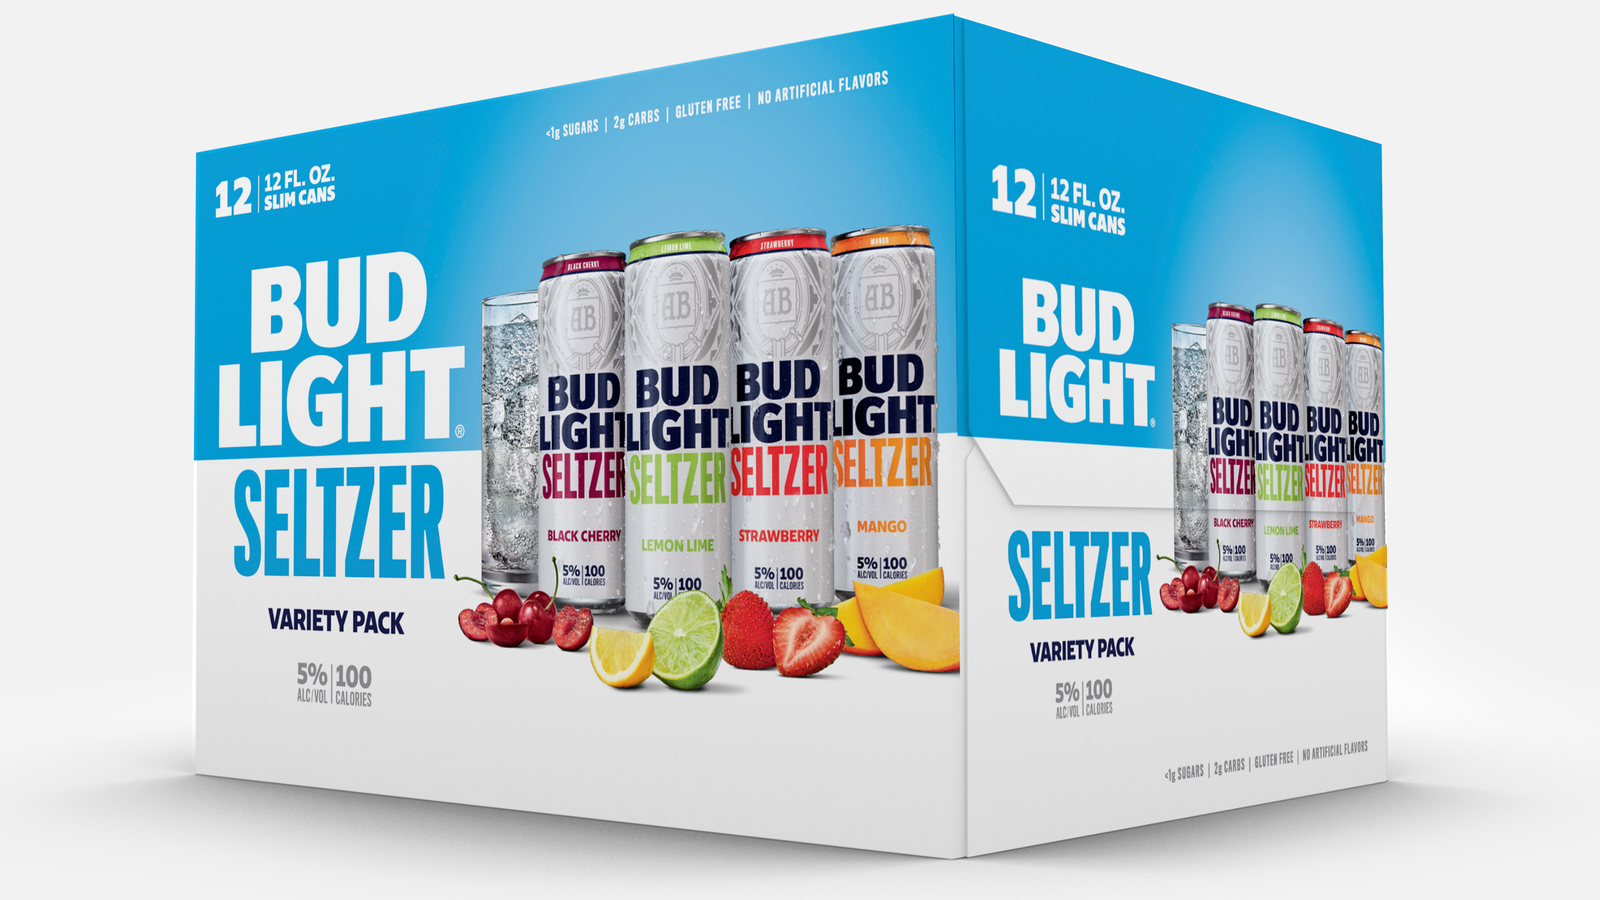 Bud Light Seltzer is already a sensation